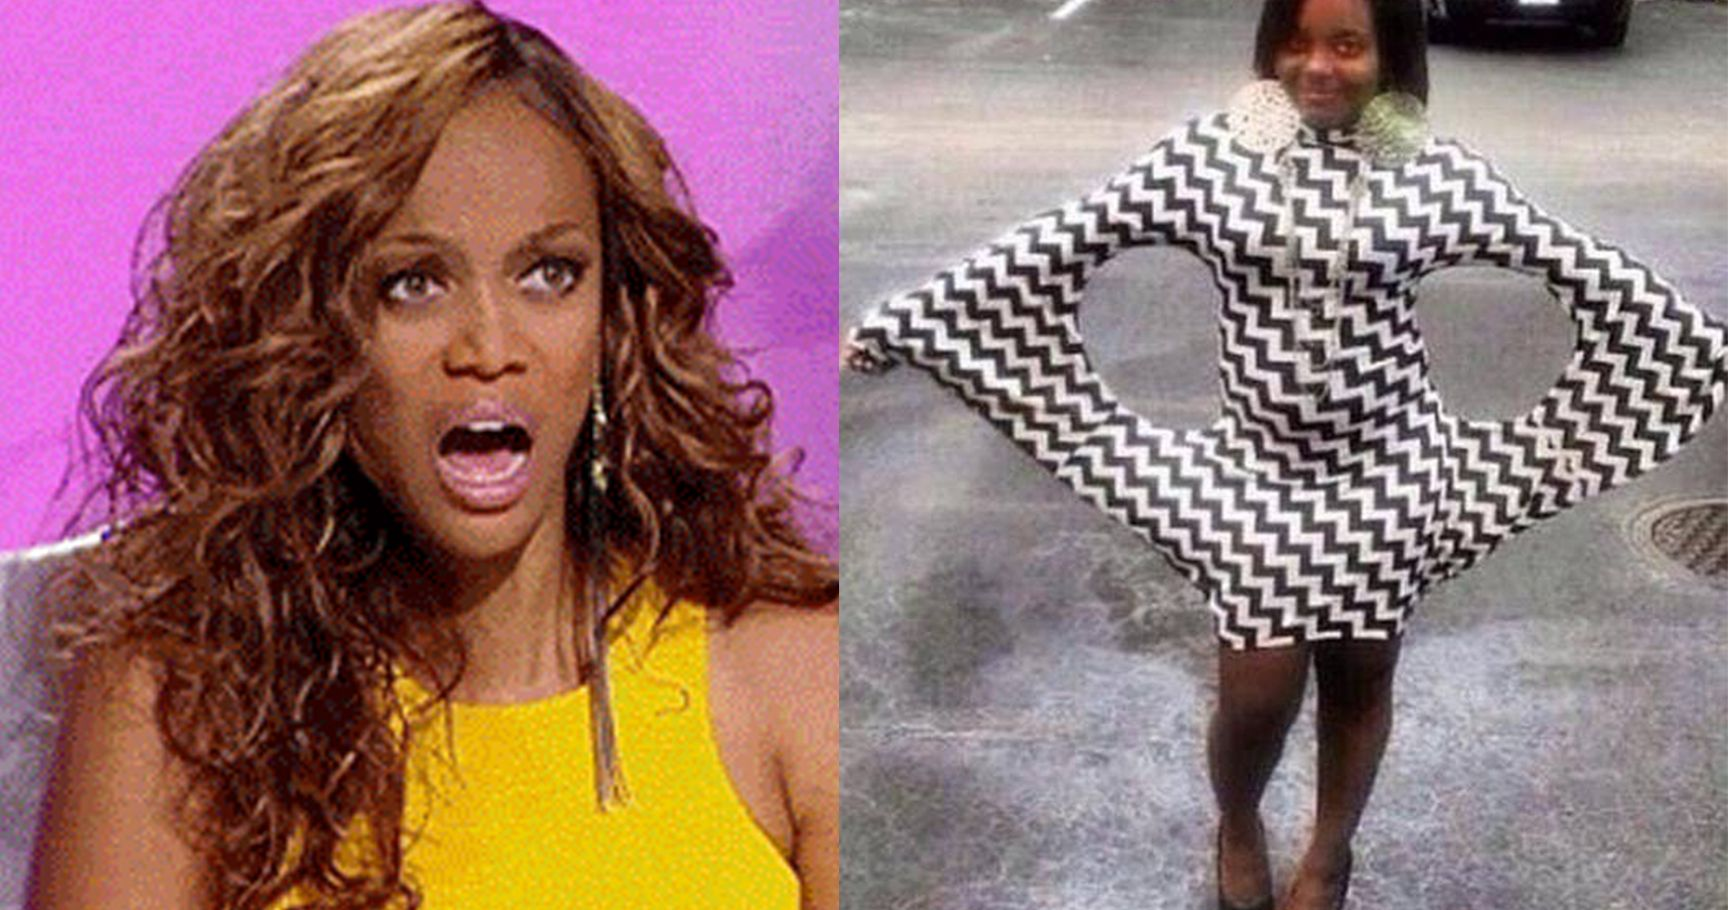 15 Outfits That Should Have Gone Straight Into The Dumpster